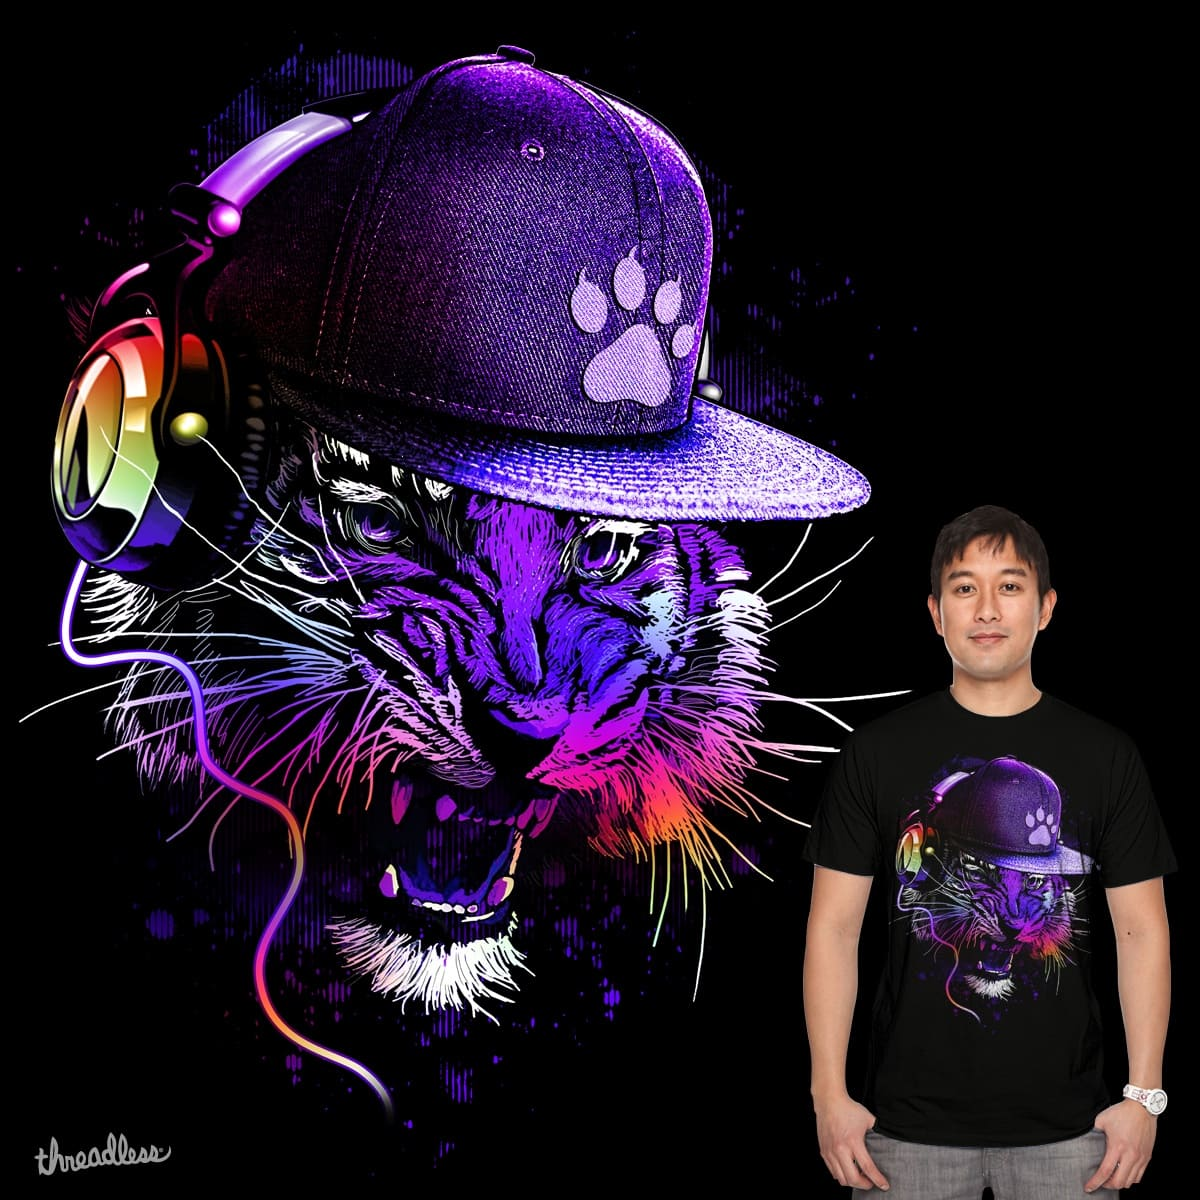 Dj Tiger by chingmoncheng on Threadless